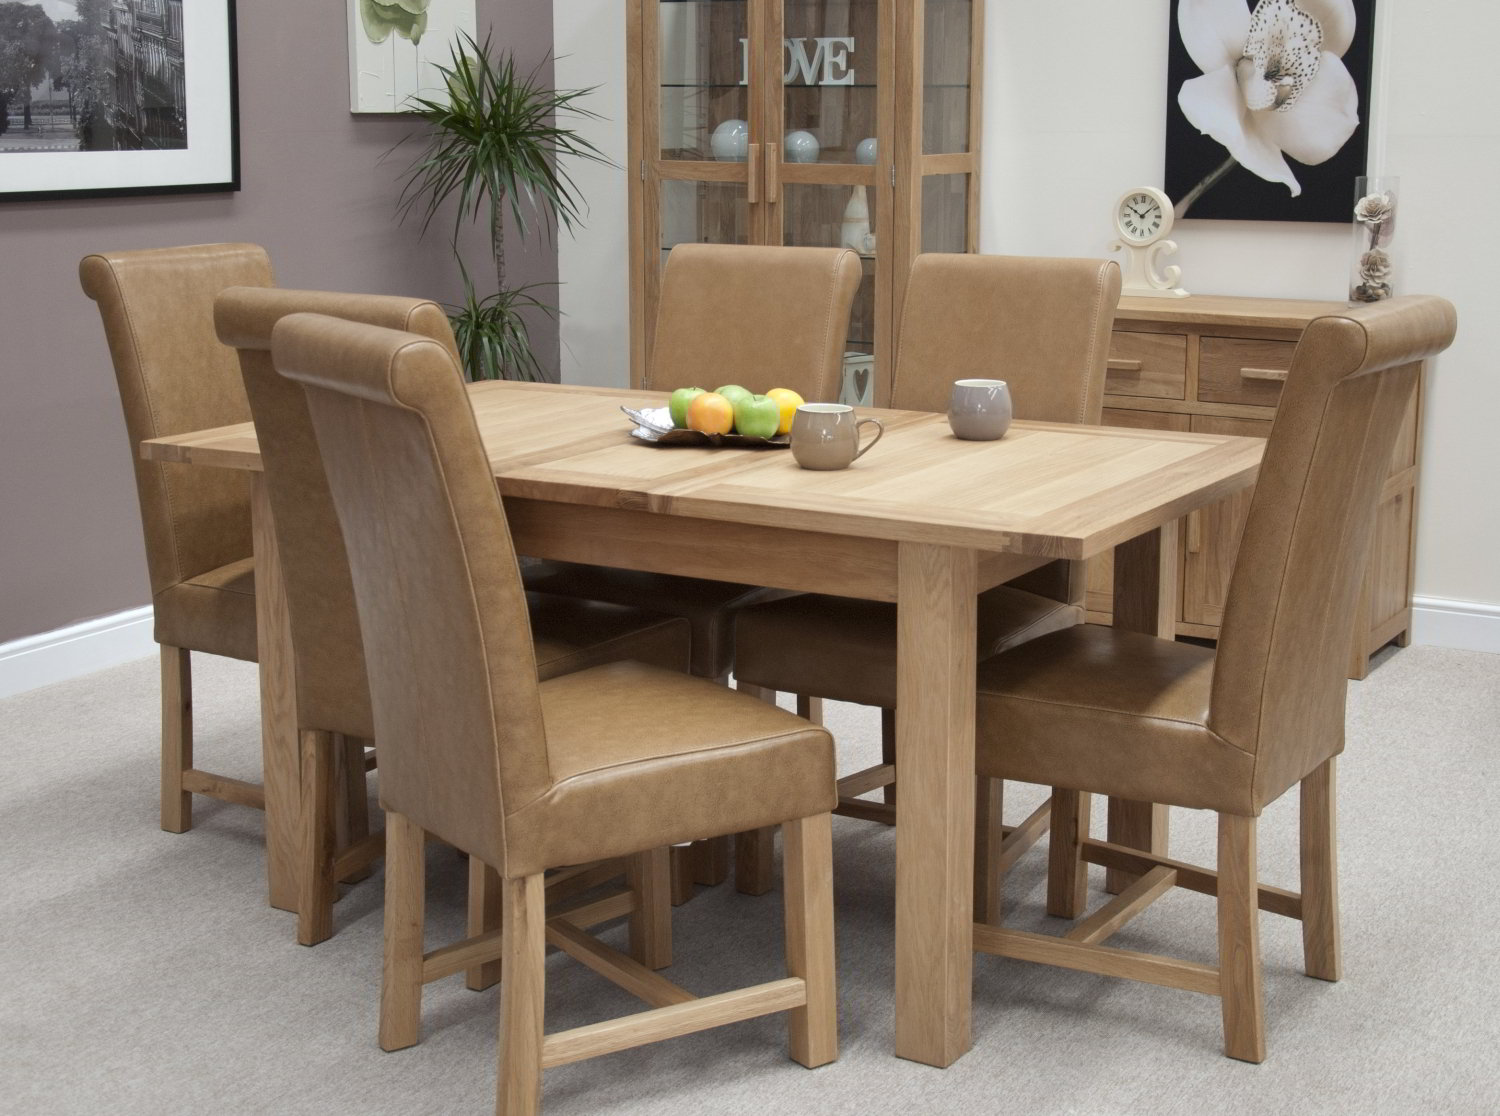 Eton solid oak furniture extending dining table with six  : 53751 from www.ebay.co.uk size 1500 x 1116 jpeg 238kB